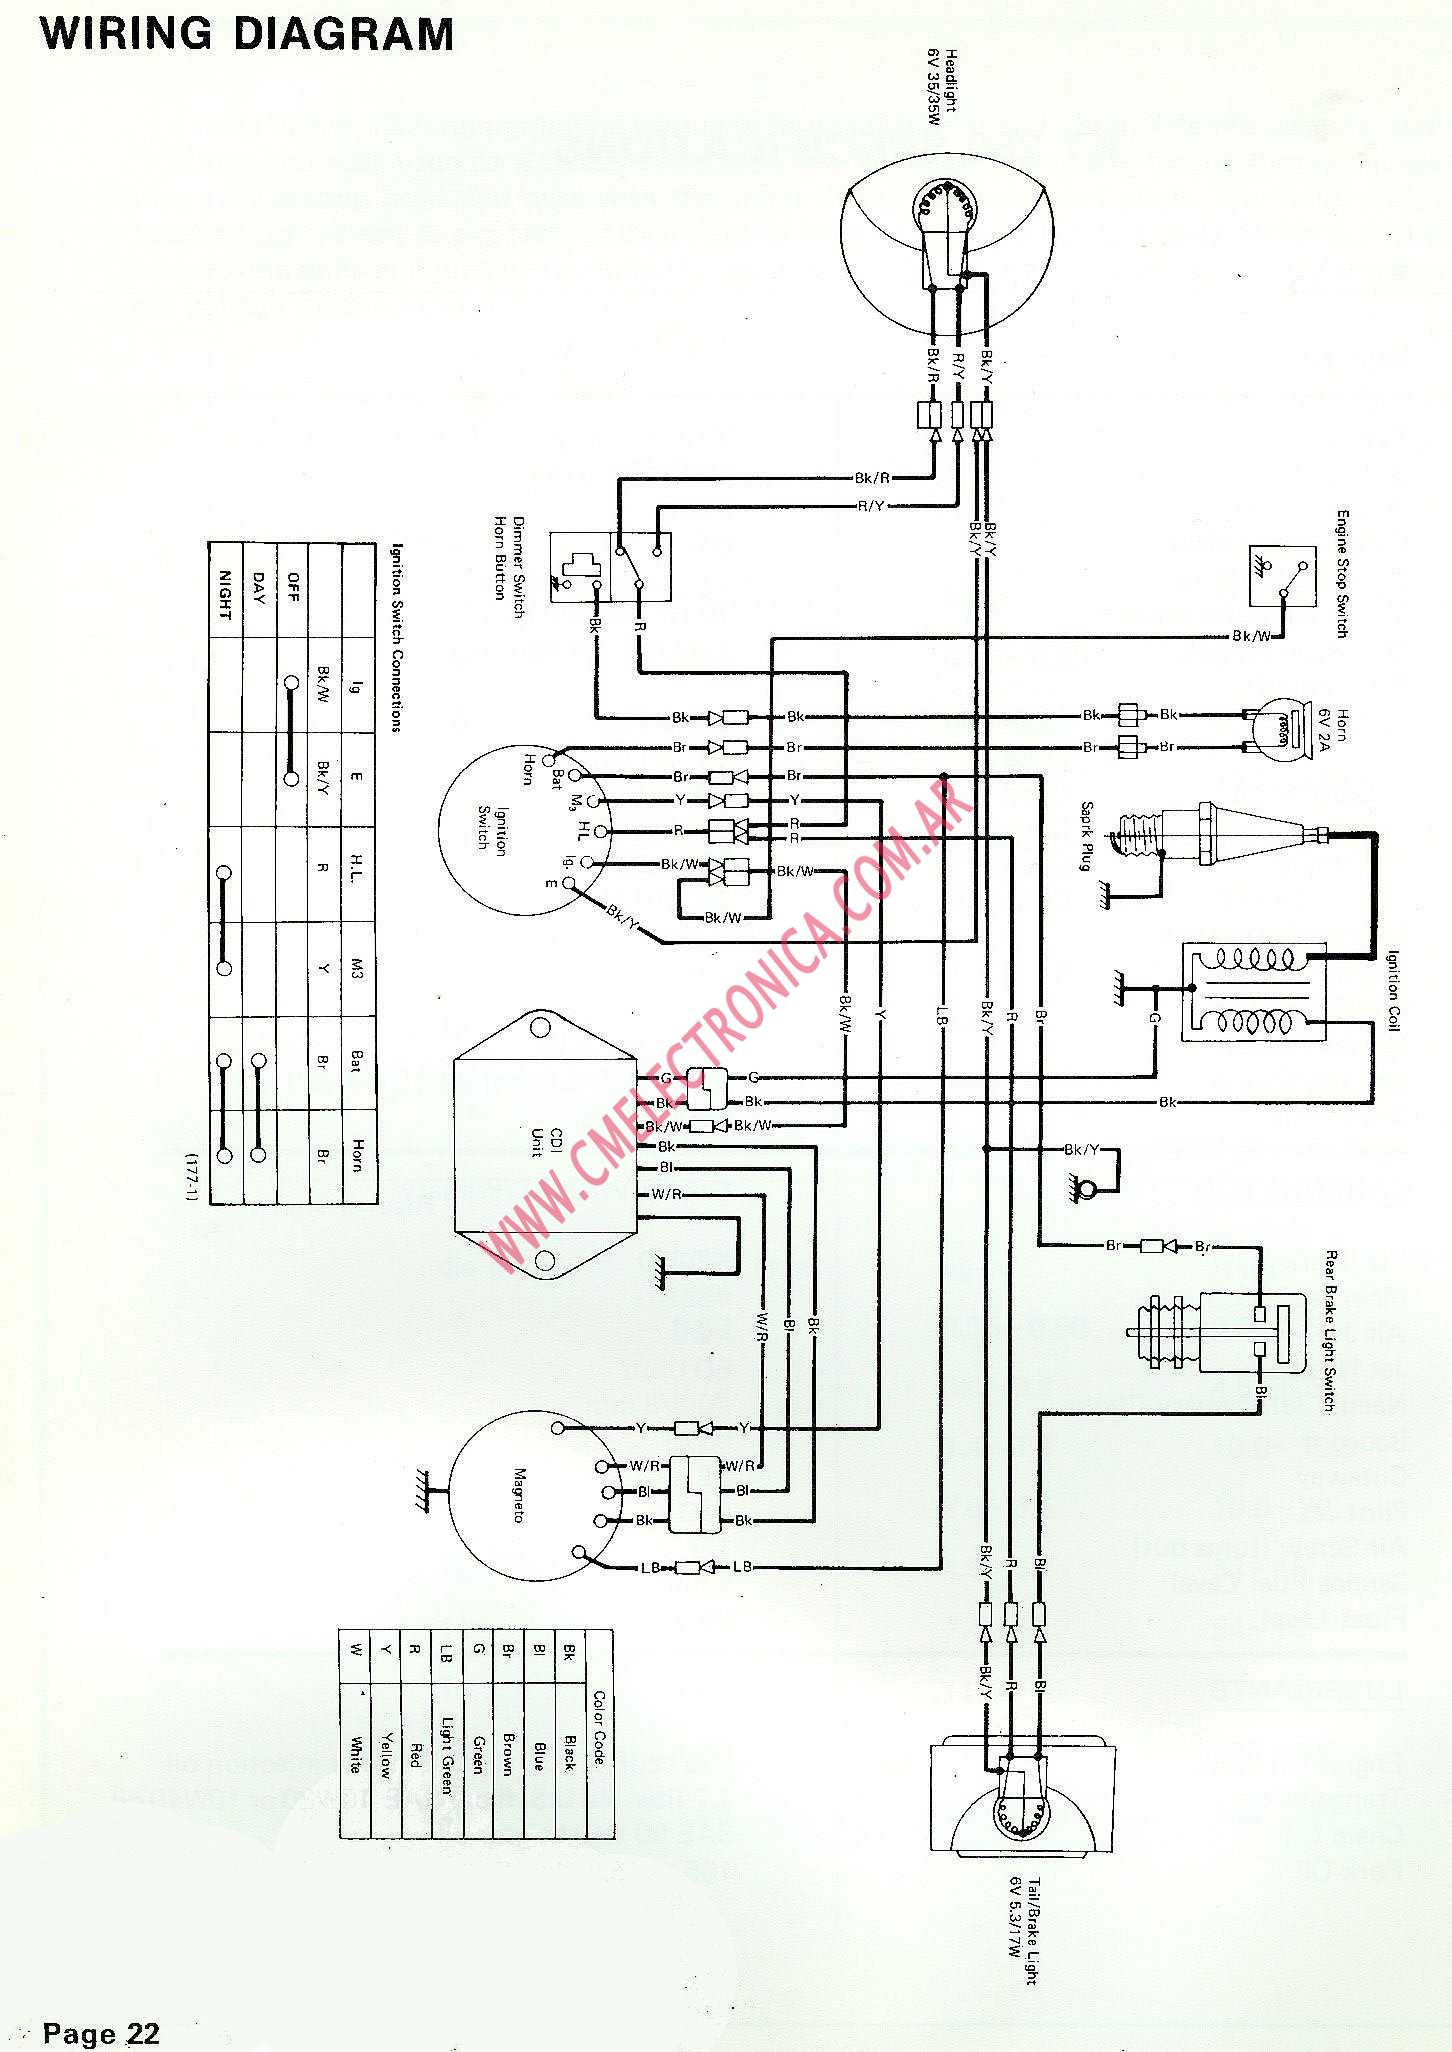 WIRING DIAGRAM FOR YAMAHA TIMBERWOLF 250 Source · xsvi 6502 nav wiring  diagram Collection Yamaha Golf Cart Wiring Diagram Best Timberwolf  Wikishare 6